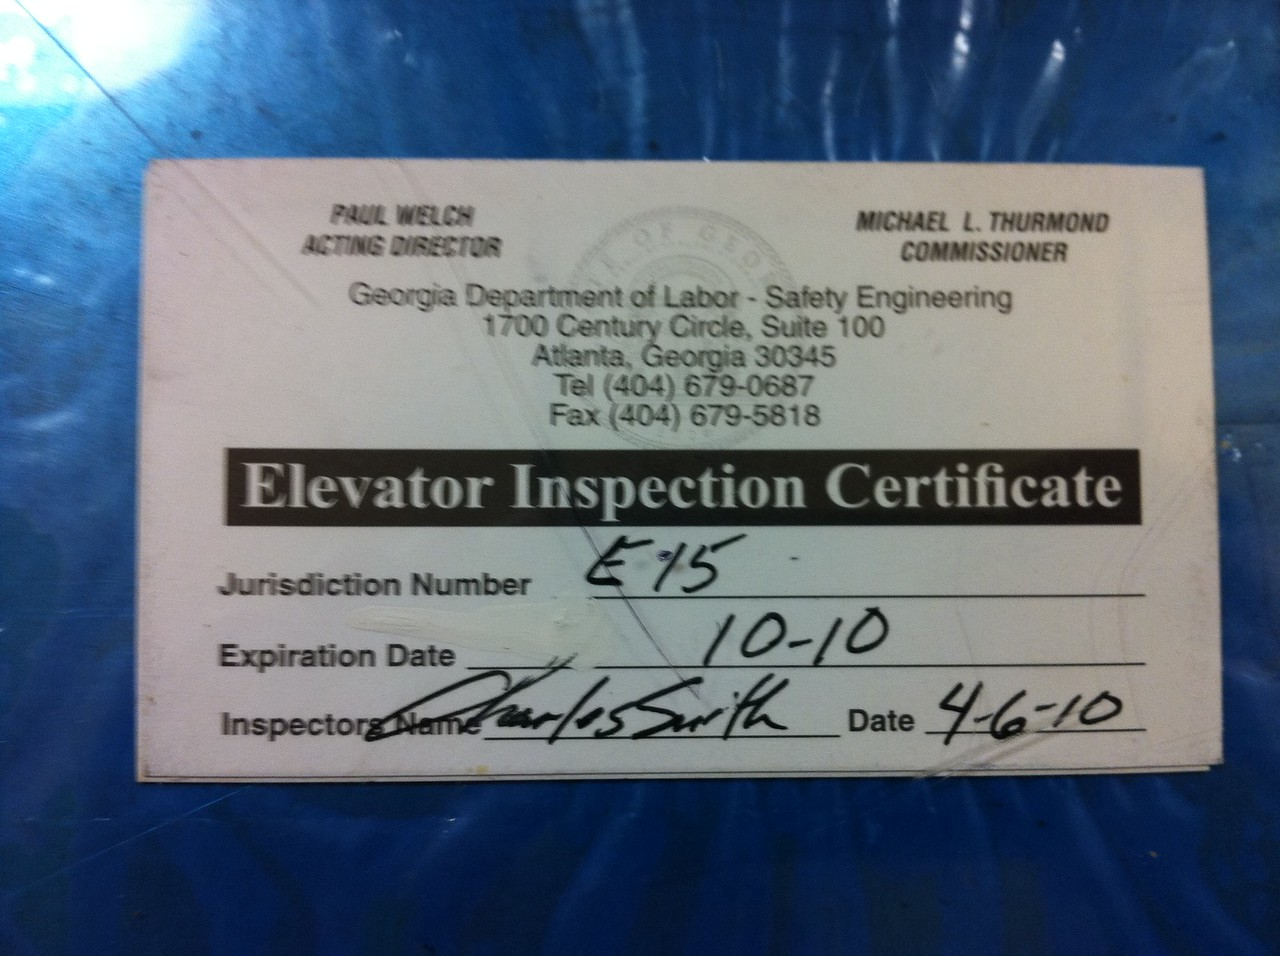 This photo was taken November 20, 2010.  This is the inspection certificate from the elevator of our hotel in Savannah, GA.  Note the 10/10 expiration date.